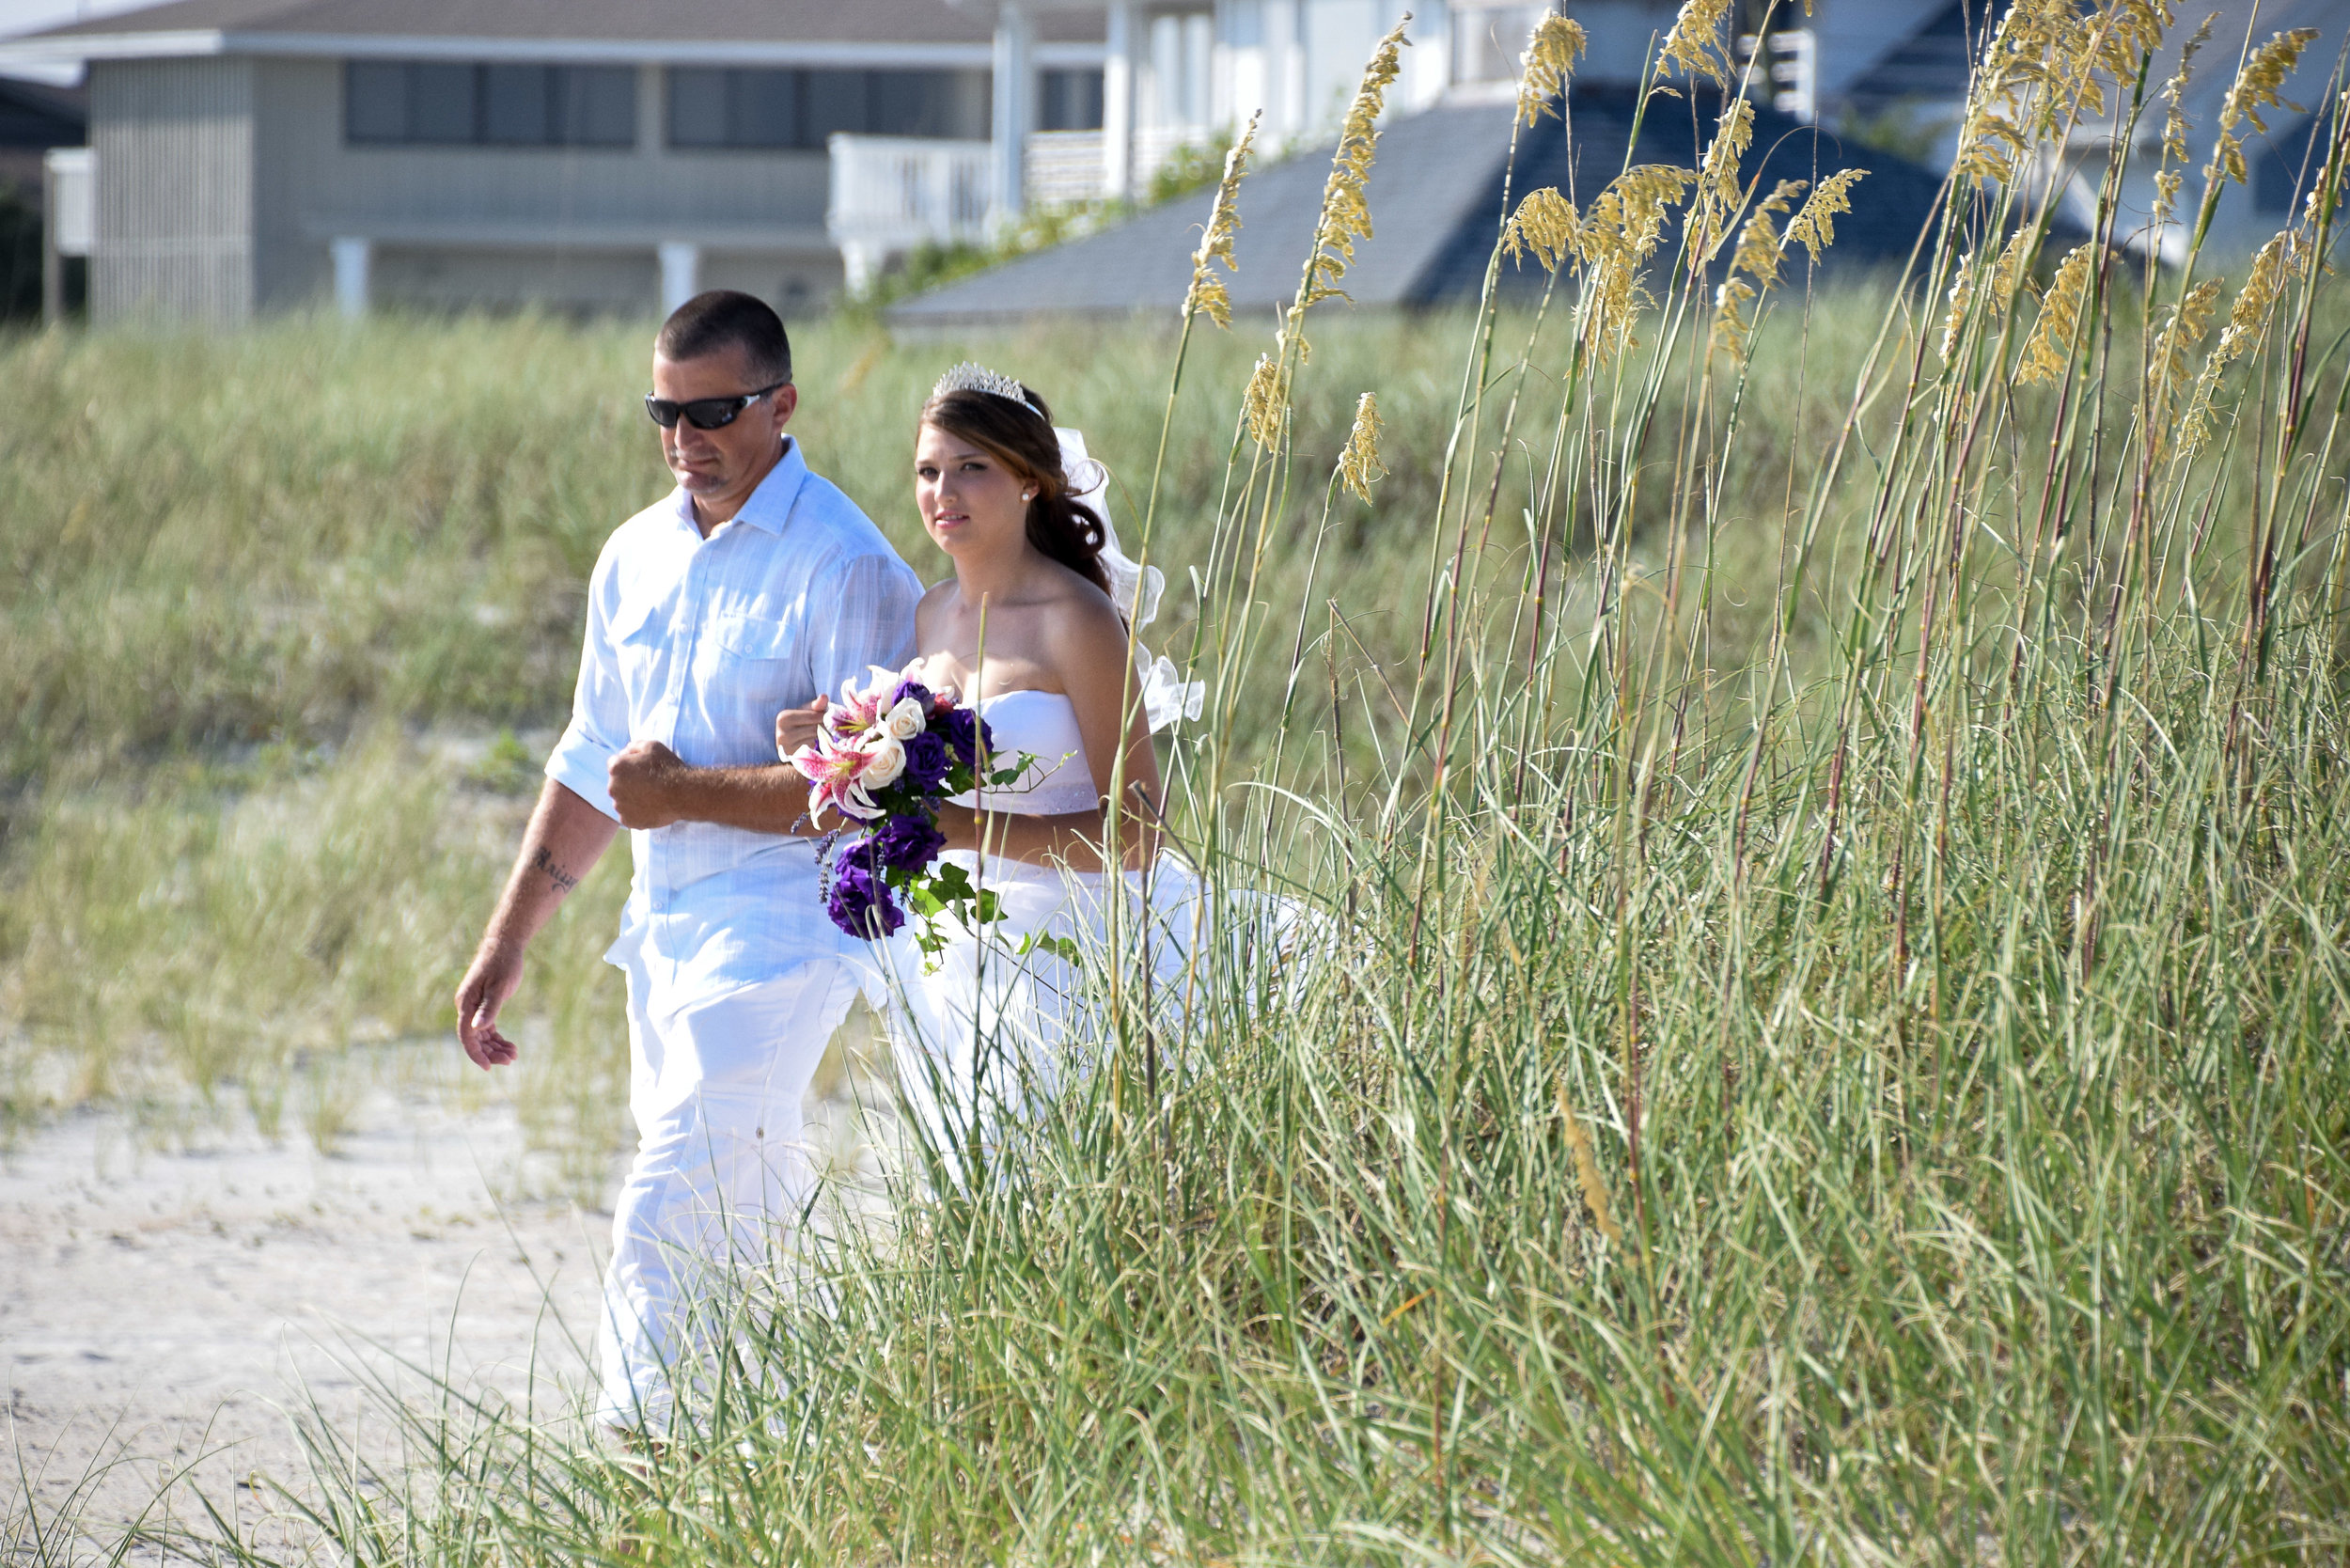 Bride being walked to her wedding by her dad.